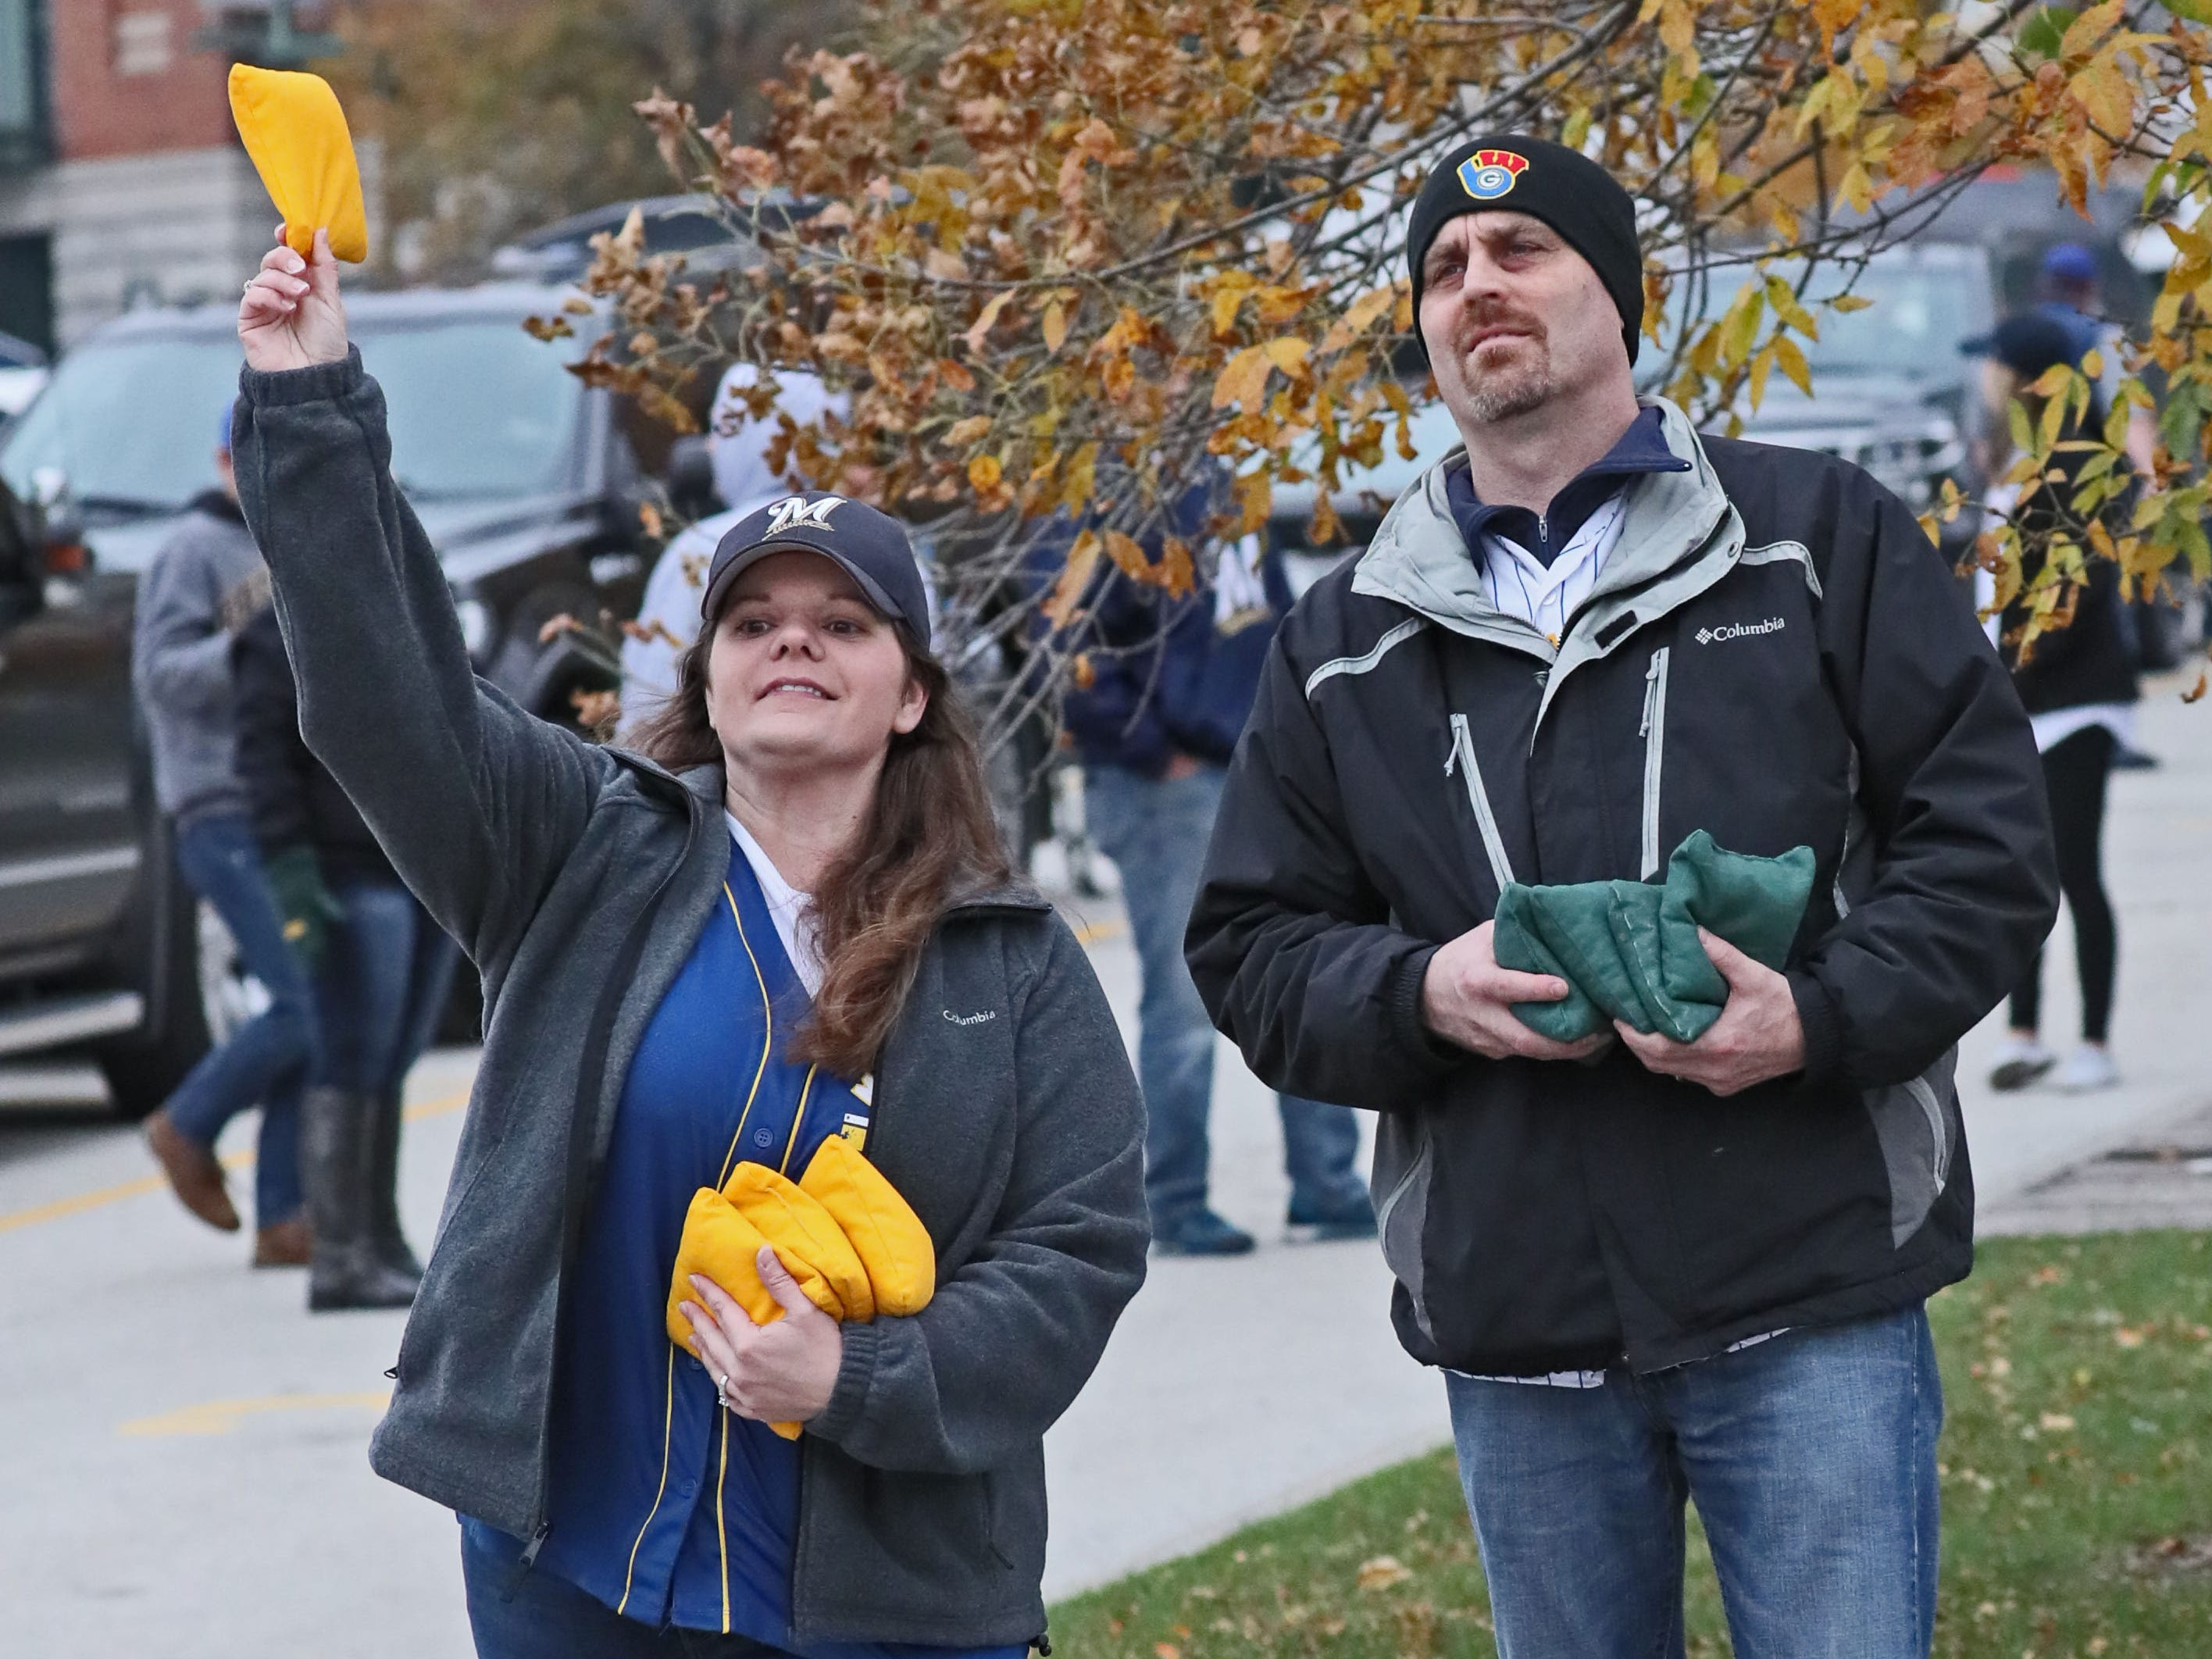 Stephanie Baumeister (left) and her husband, Andrew Baumeister of Pewaukee, played a game of bean bag toss as they tailgated before the game.